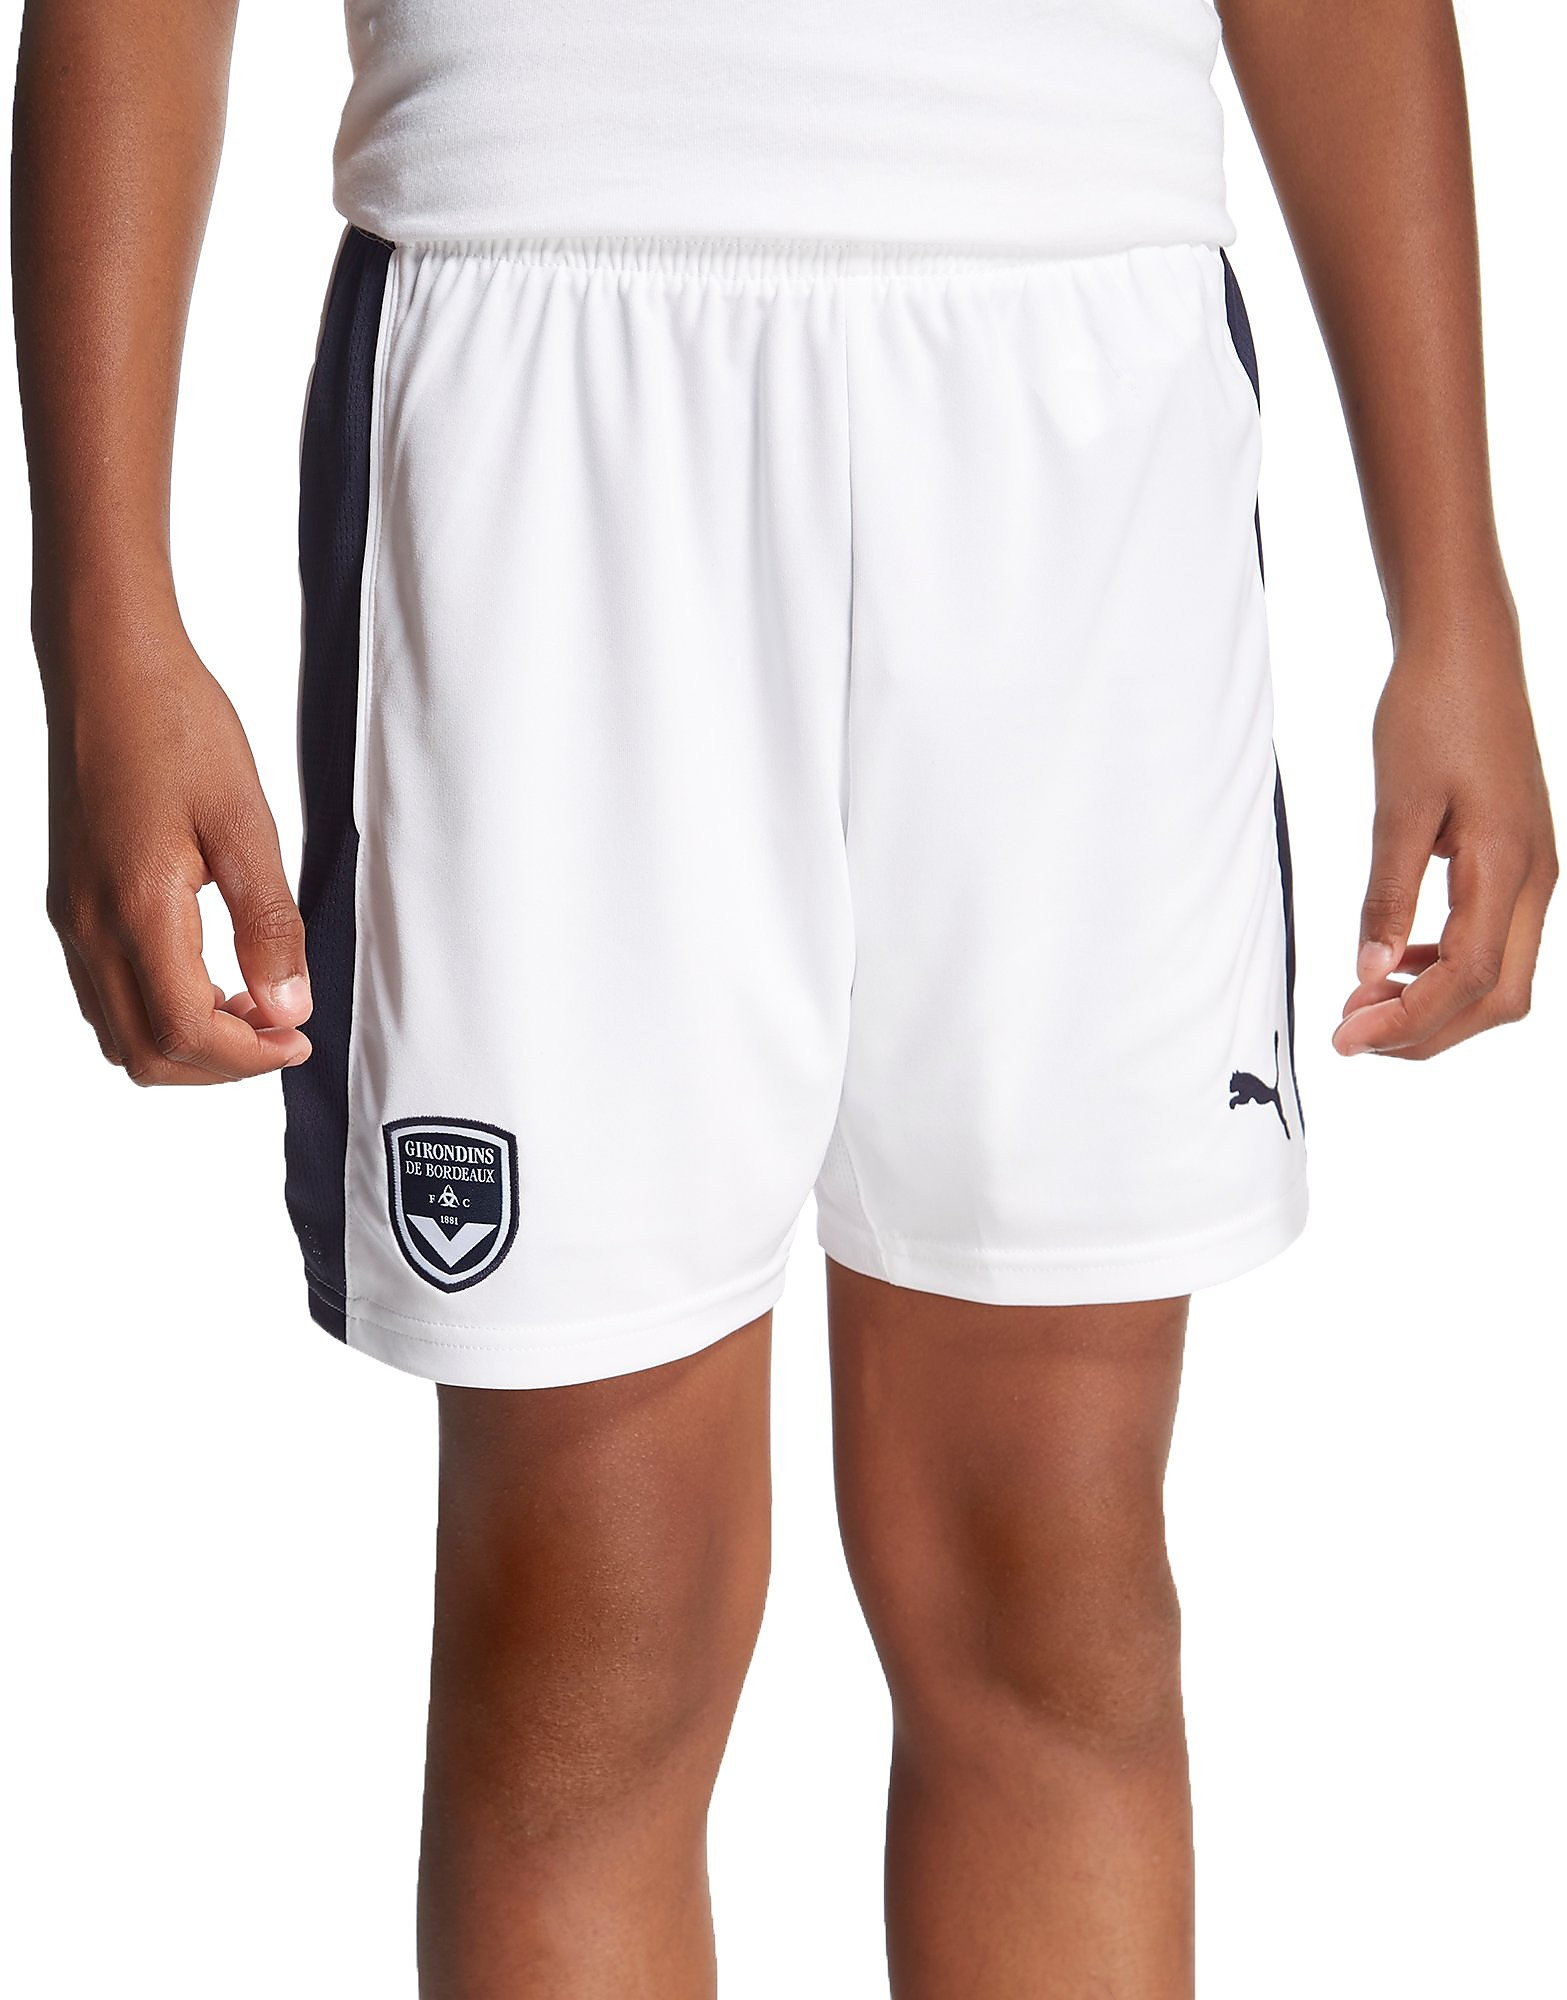 PUMA Bordeaux 2016/17 Home Shorts Junior